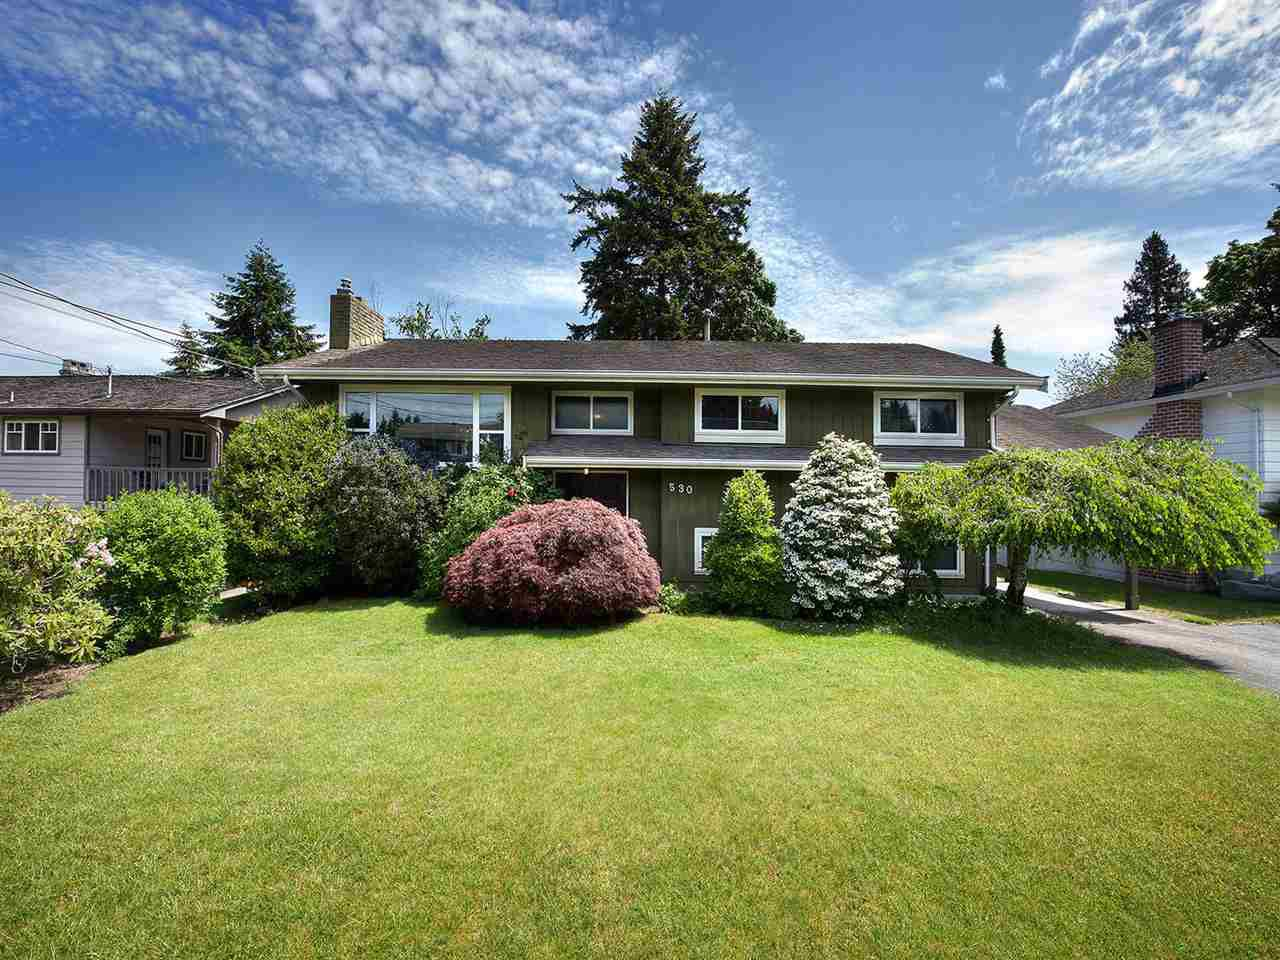 Main Photo: 530 55 Street in Delta: Pebble Hill House for sale (Tsawwassen)  : MLS®# R2172625